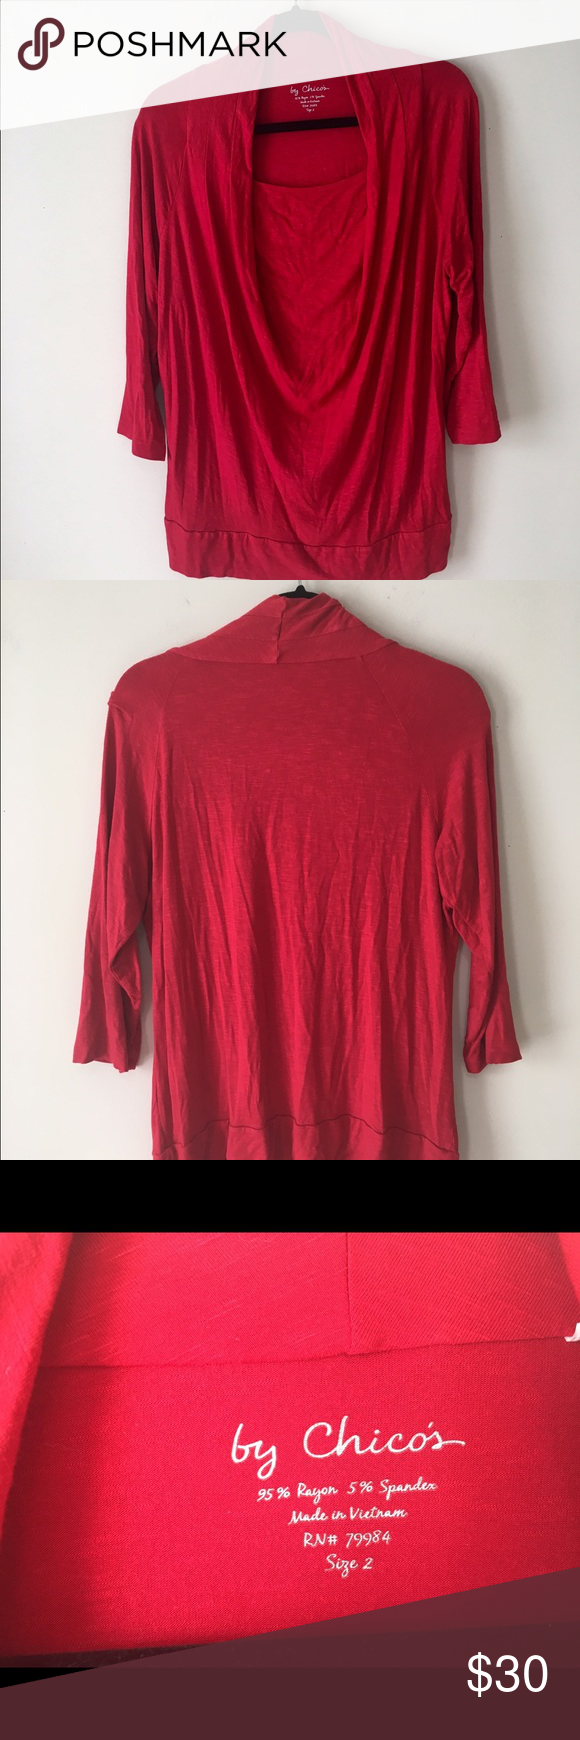 CHICO's 3/4 Sleeve Top Sz 2 In pristine condition Chico's Tops Blouses